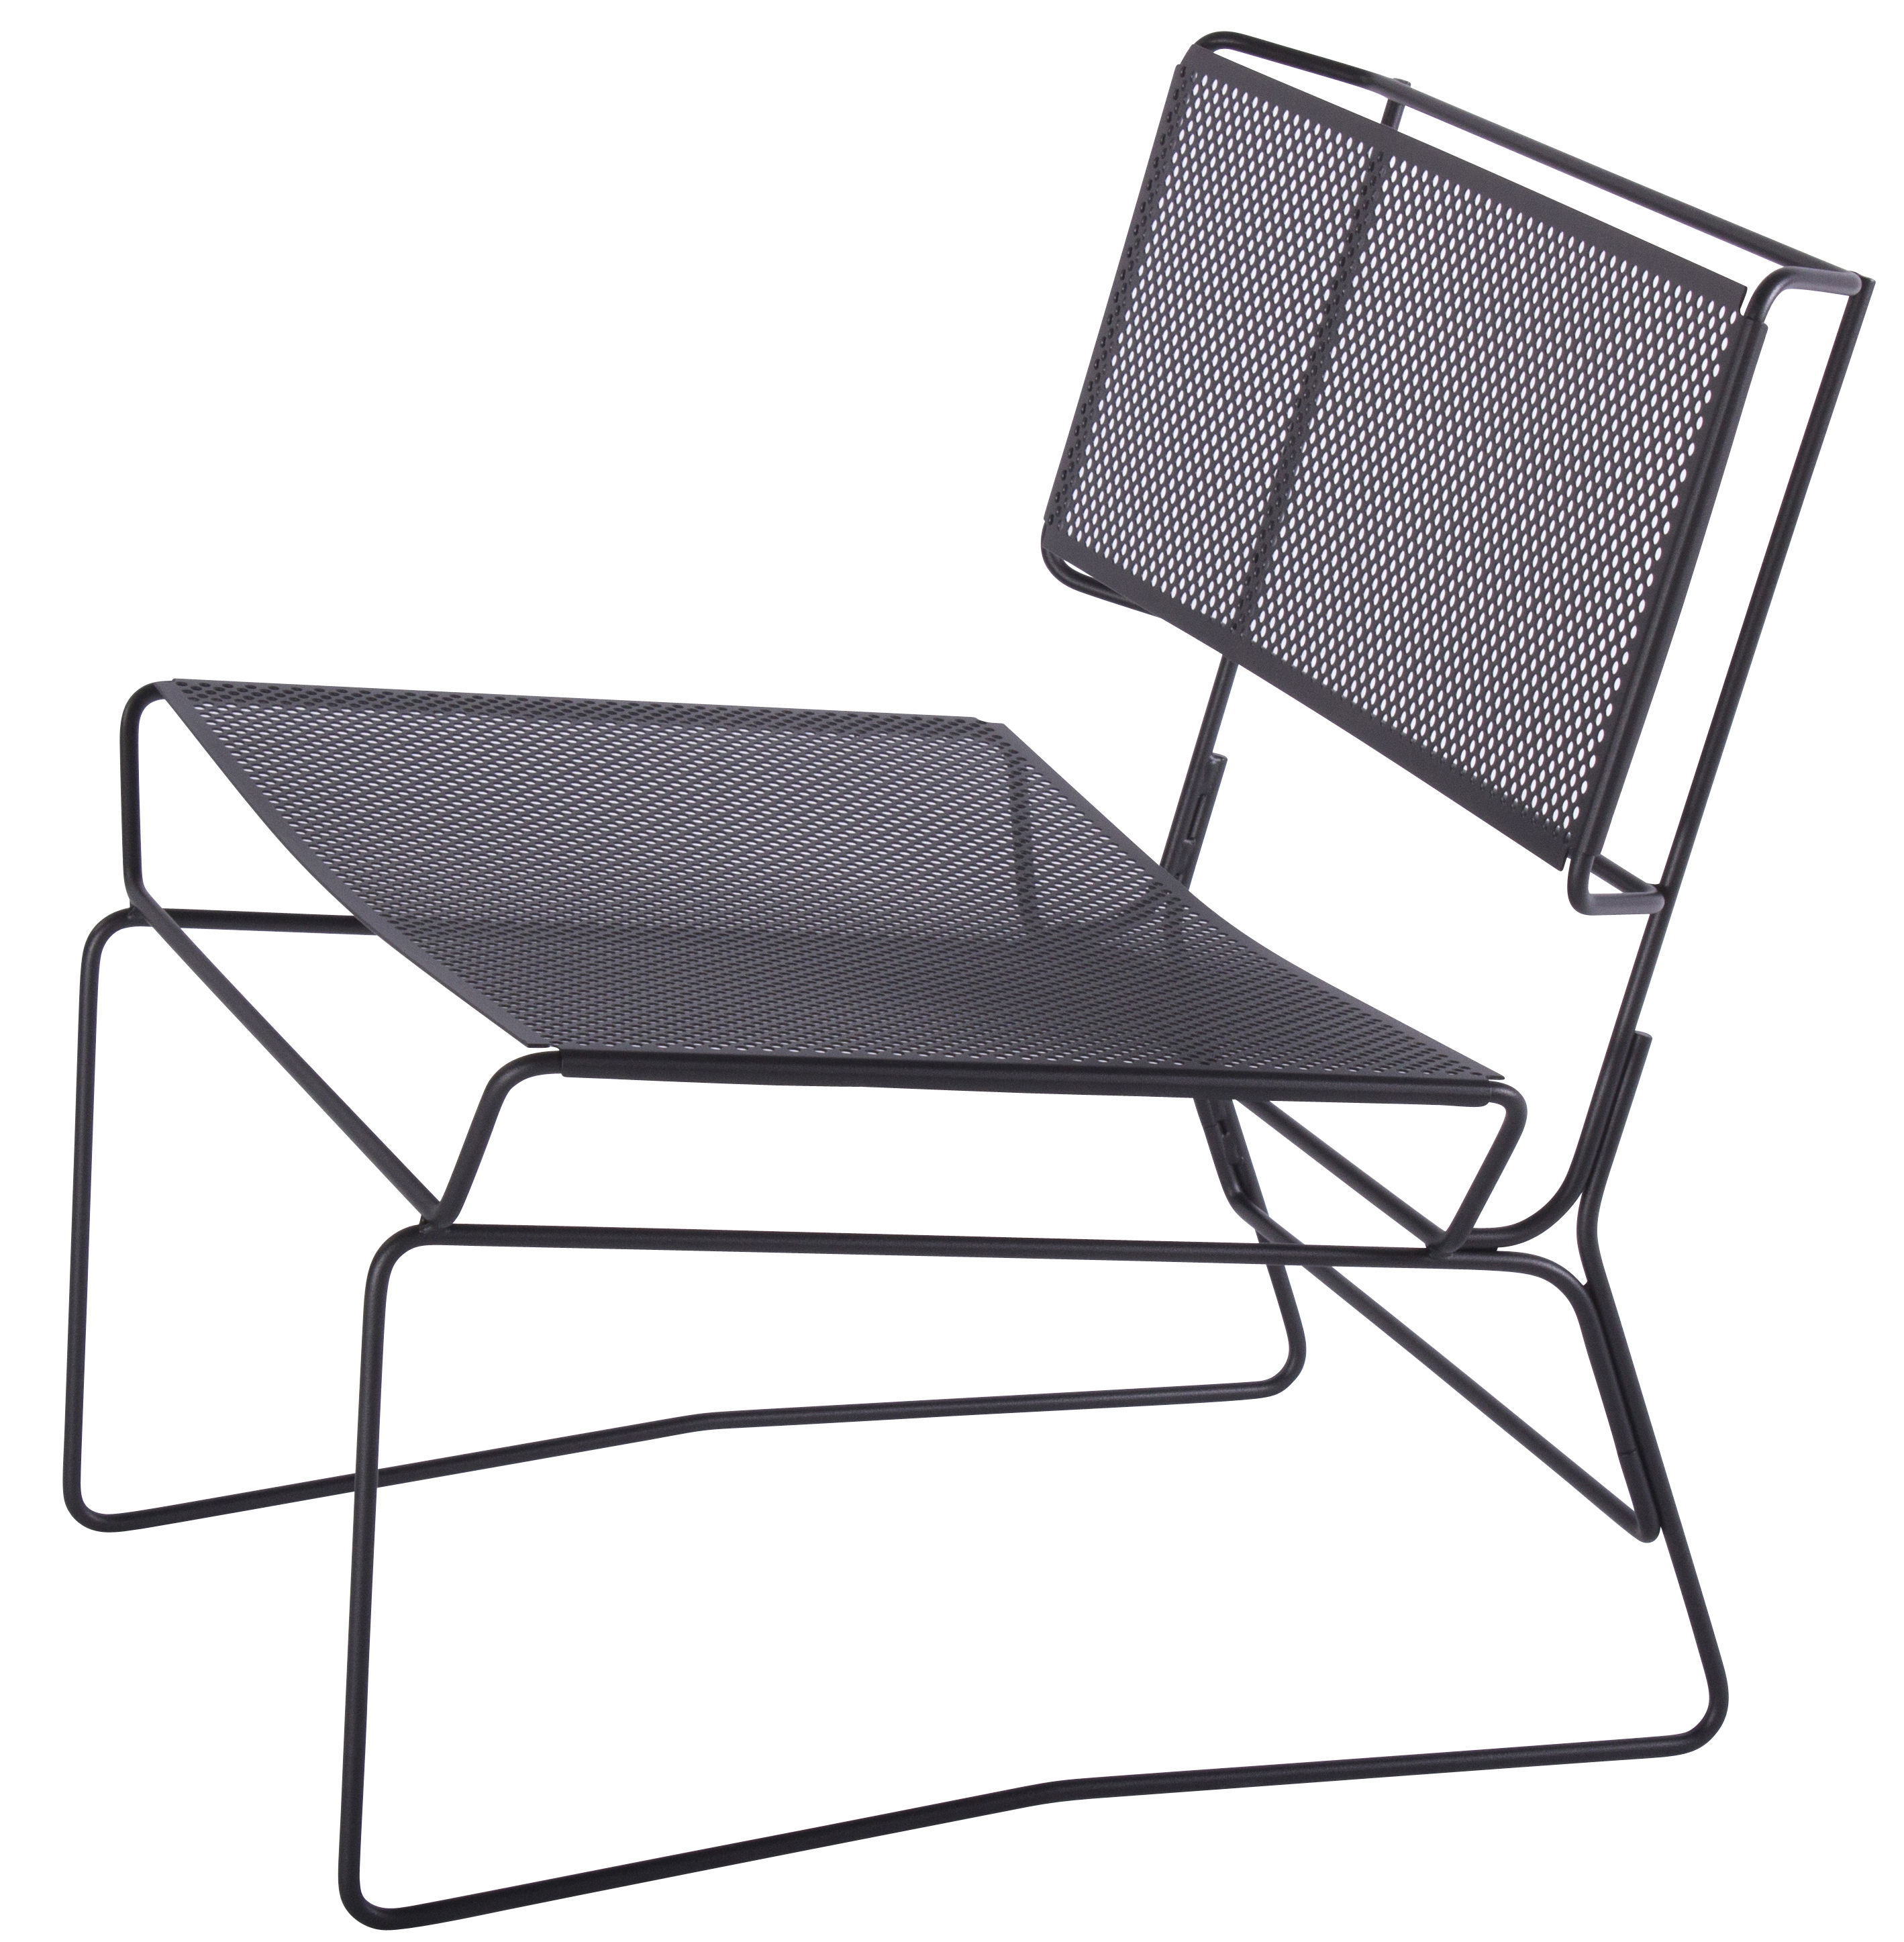 Furniture - Armchairs - Fil Low armchair by AA-New Design - Black - Epoxy lacquered steel